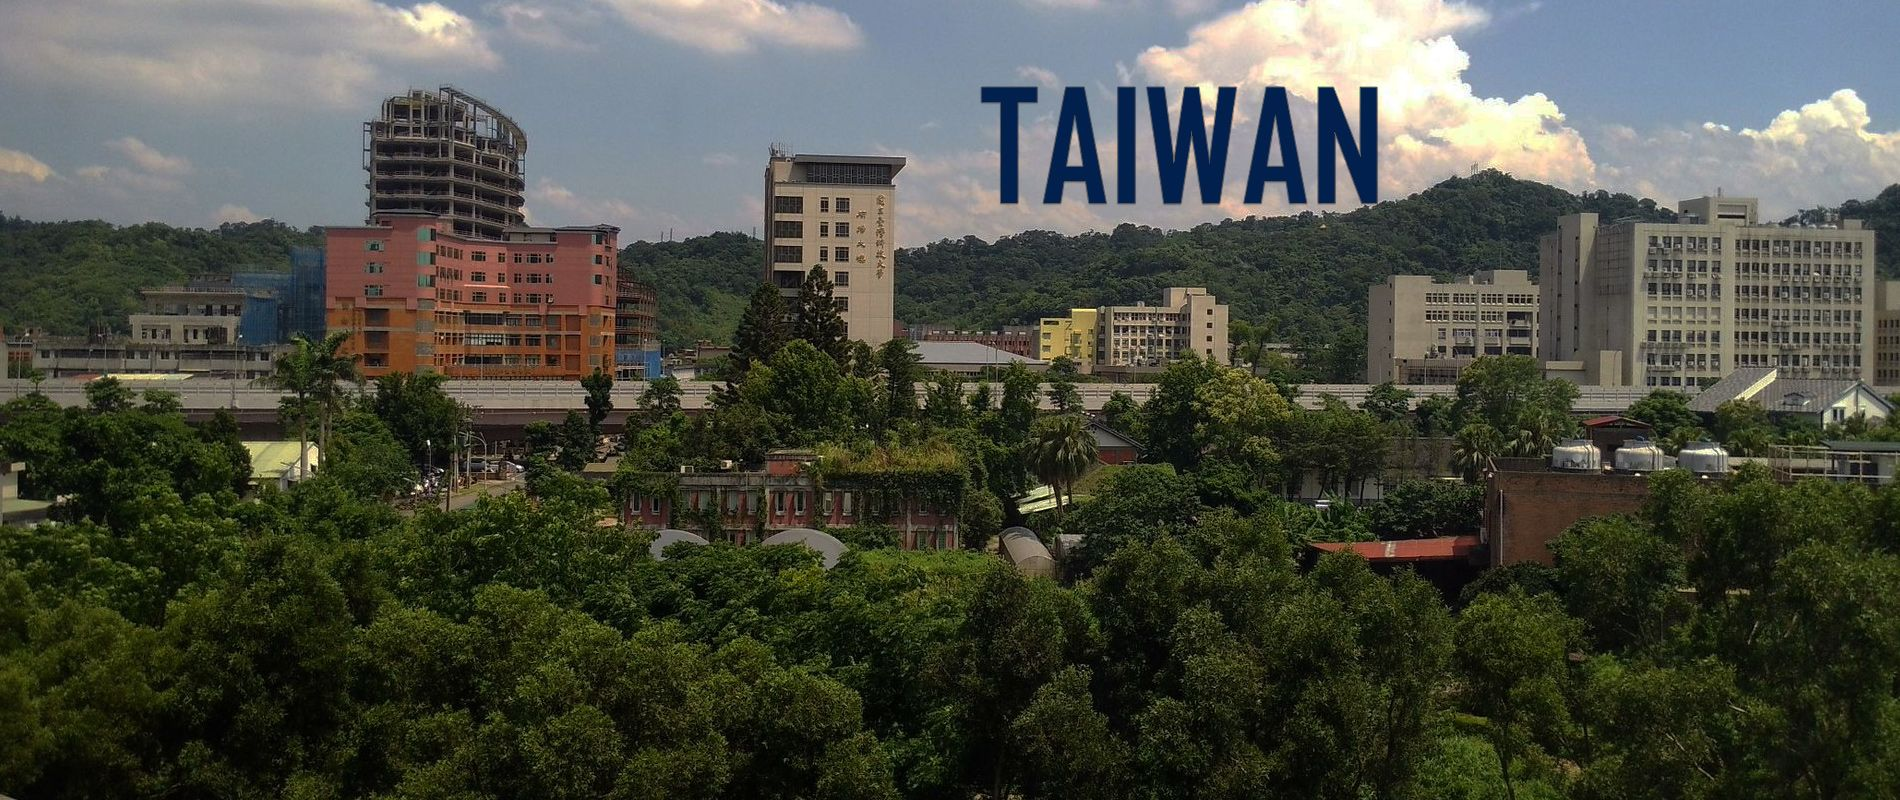 2020 Taiwan Research Grant Program and Fellowship